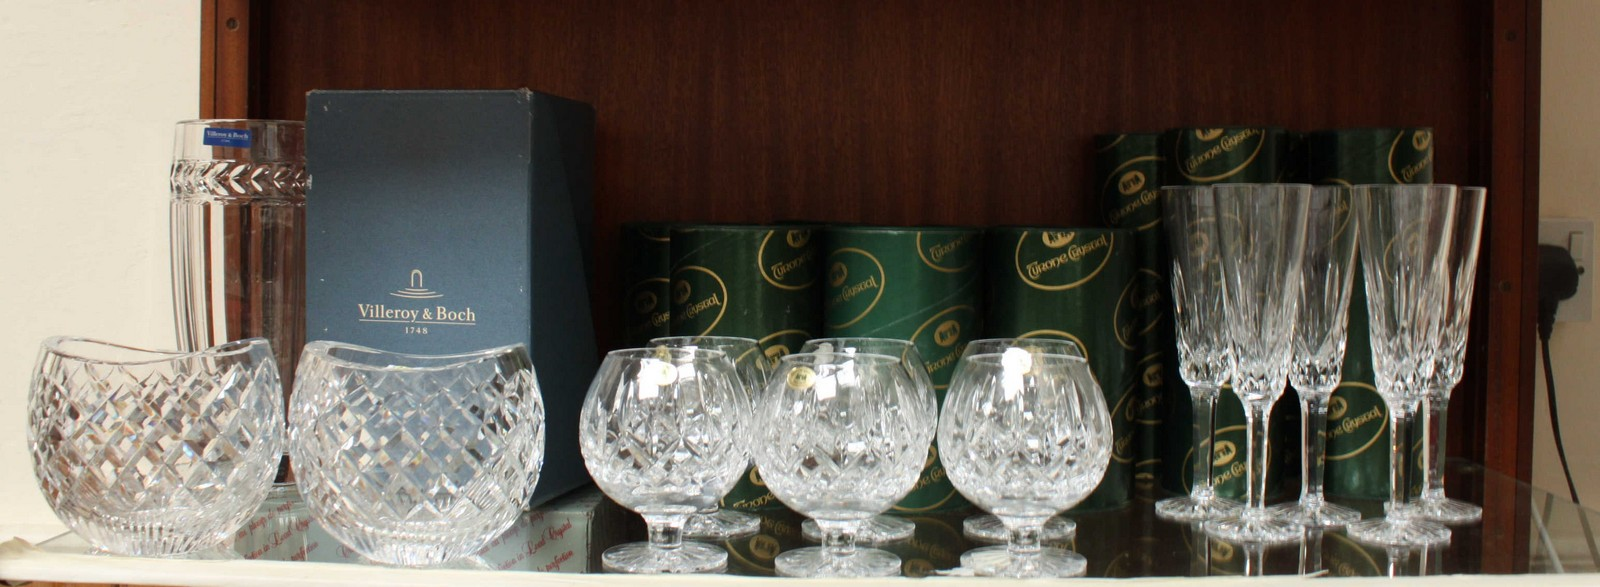 A villeroy boch vase boxed and a pair of waterford crystal oval lot 141 a villeroy boch vase boxed and a pair of waterford reviewsmspy